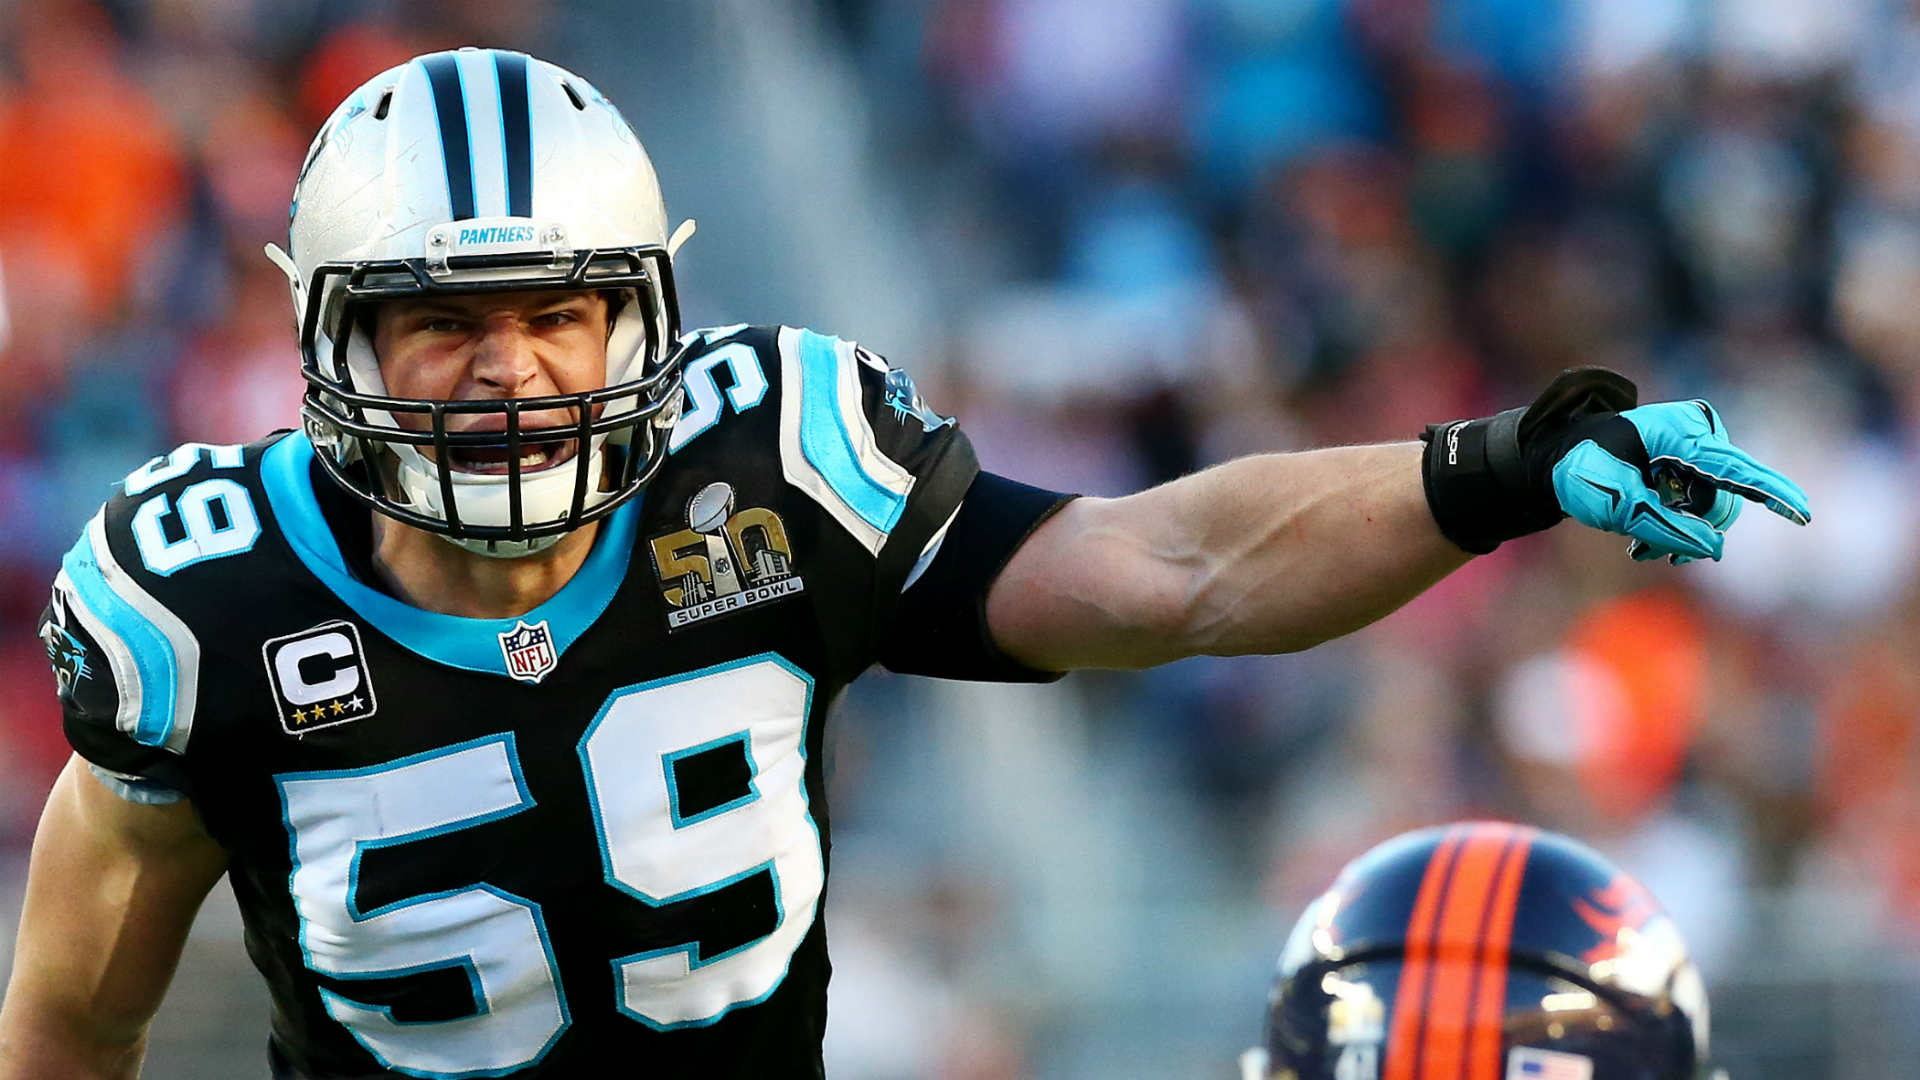 Luke Kuechly Panthers Wallpapers High Quality Festival Wallpaper 1920x1080